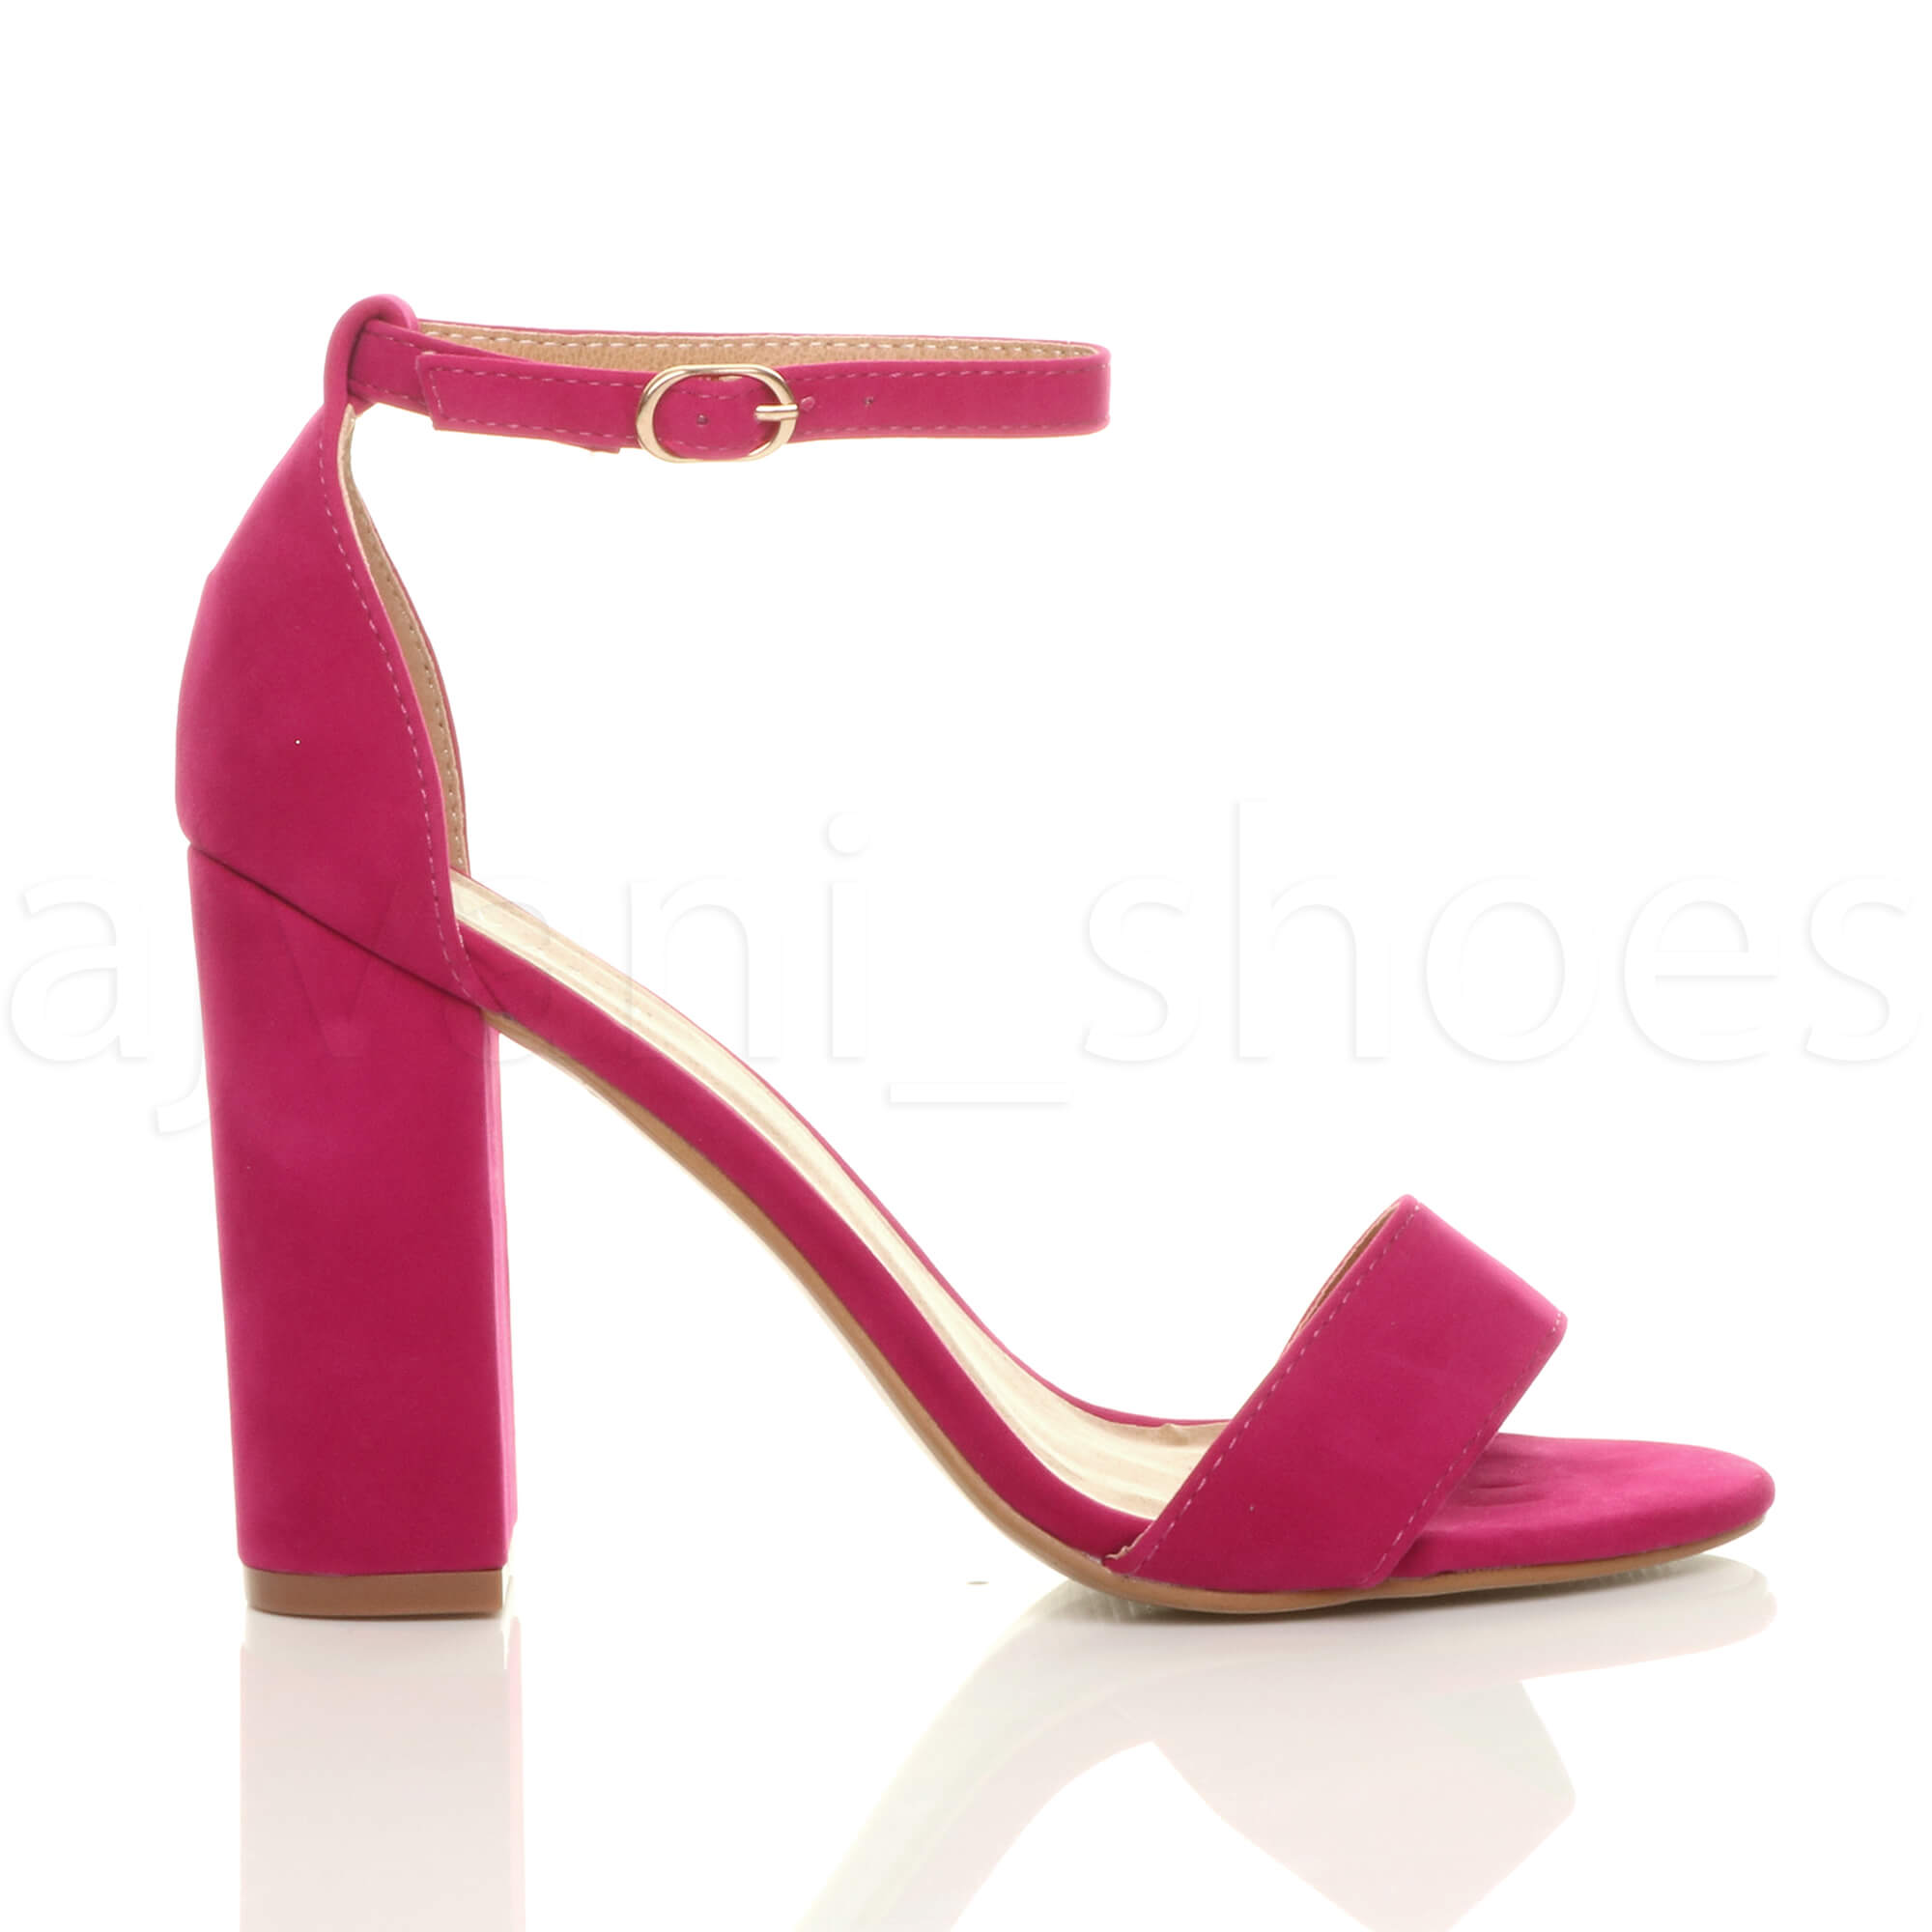 WOMENS-LADIES-BLOCK-HIGH-HEEL-ANKLE-STRAP-PEEP-TOE-STRAPPY-SANDALS-SHOES-SIZE thumbnail 60